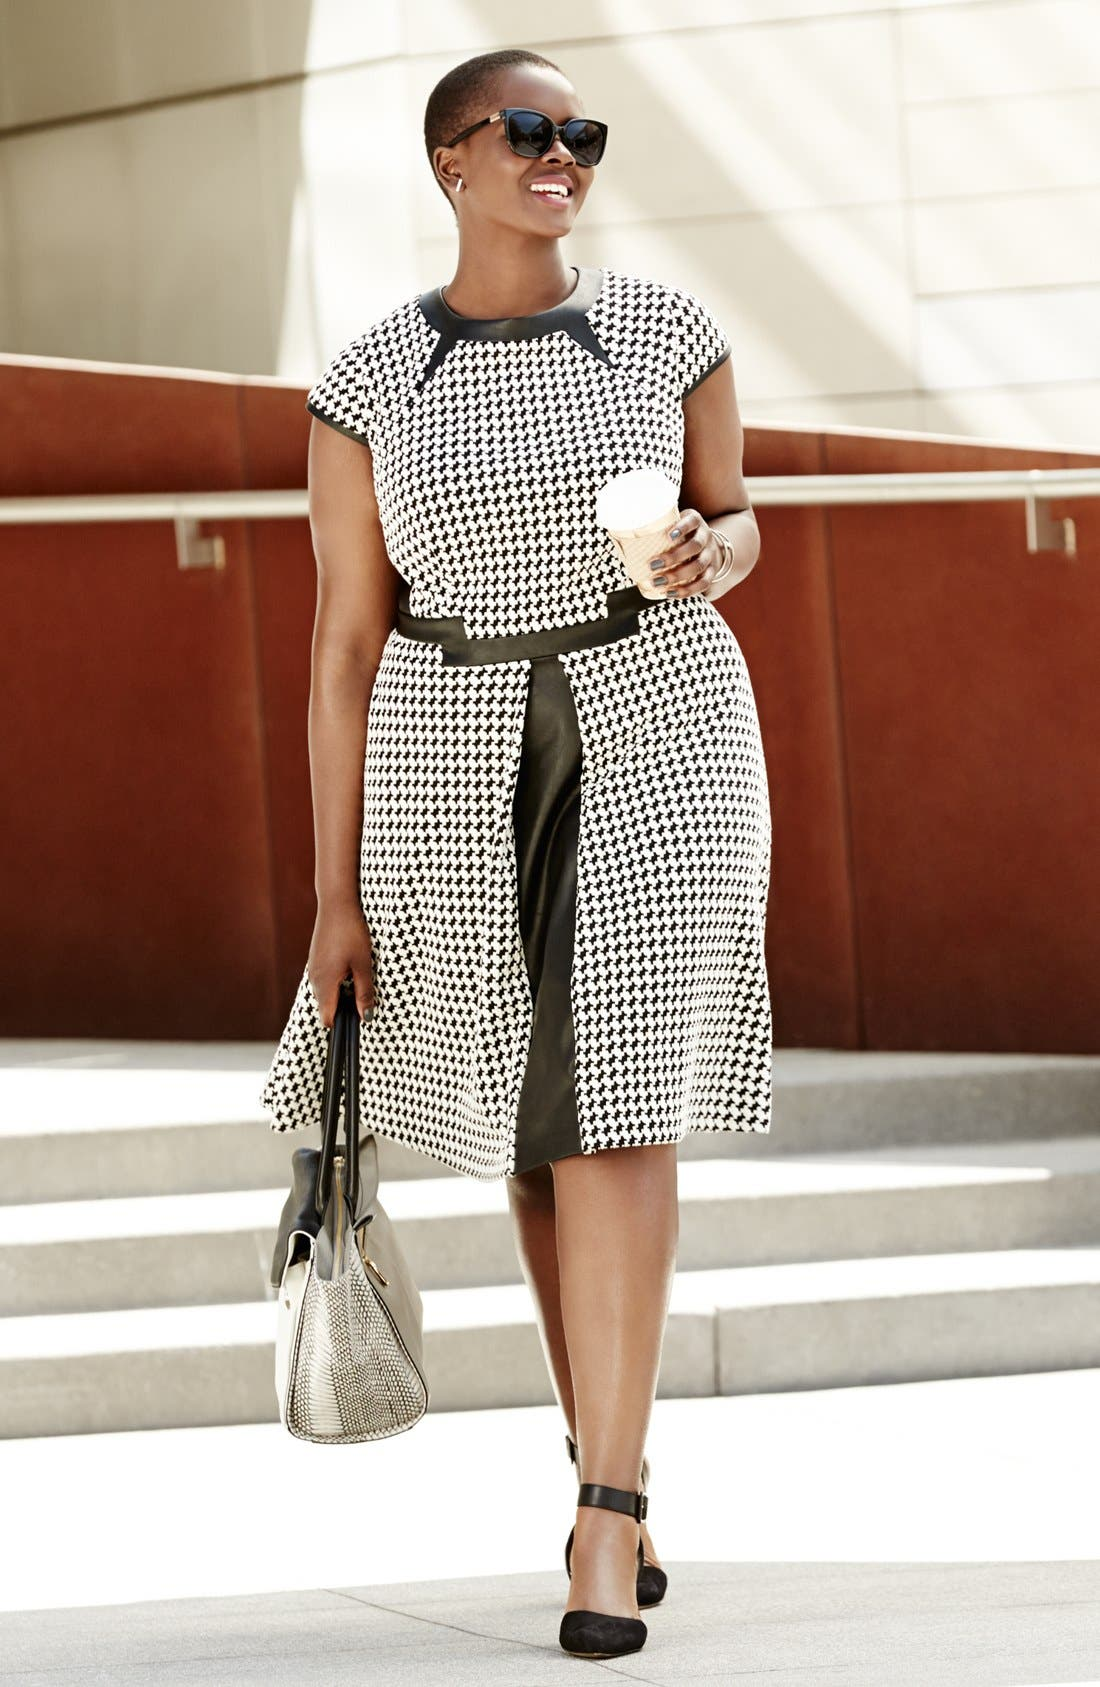 Alternate Image 3  - Julia Jordan Houndstooth Dress & Sam Edelman Pump (Plus Size)